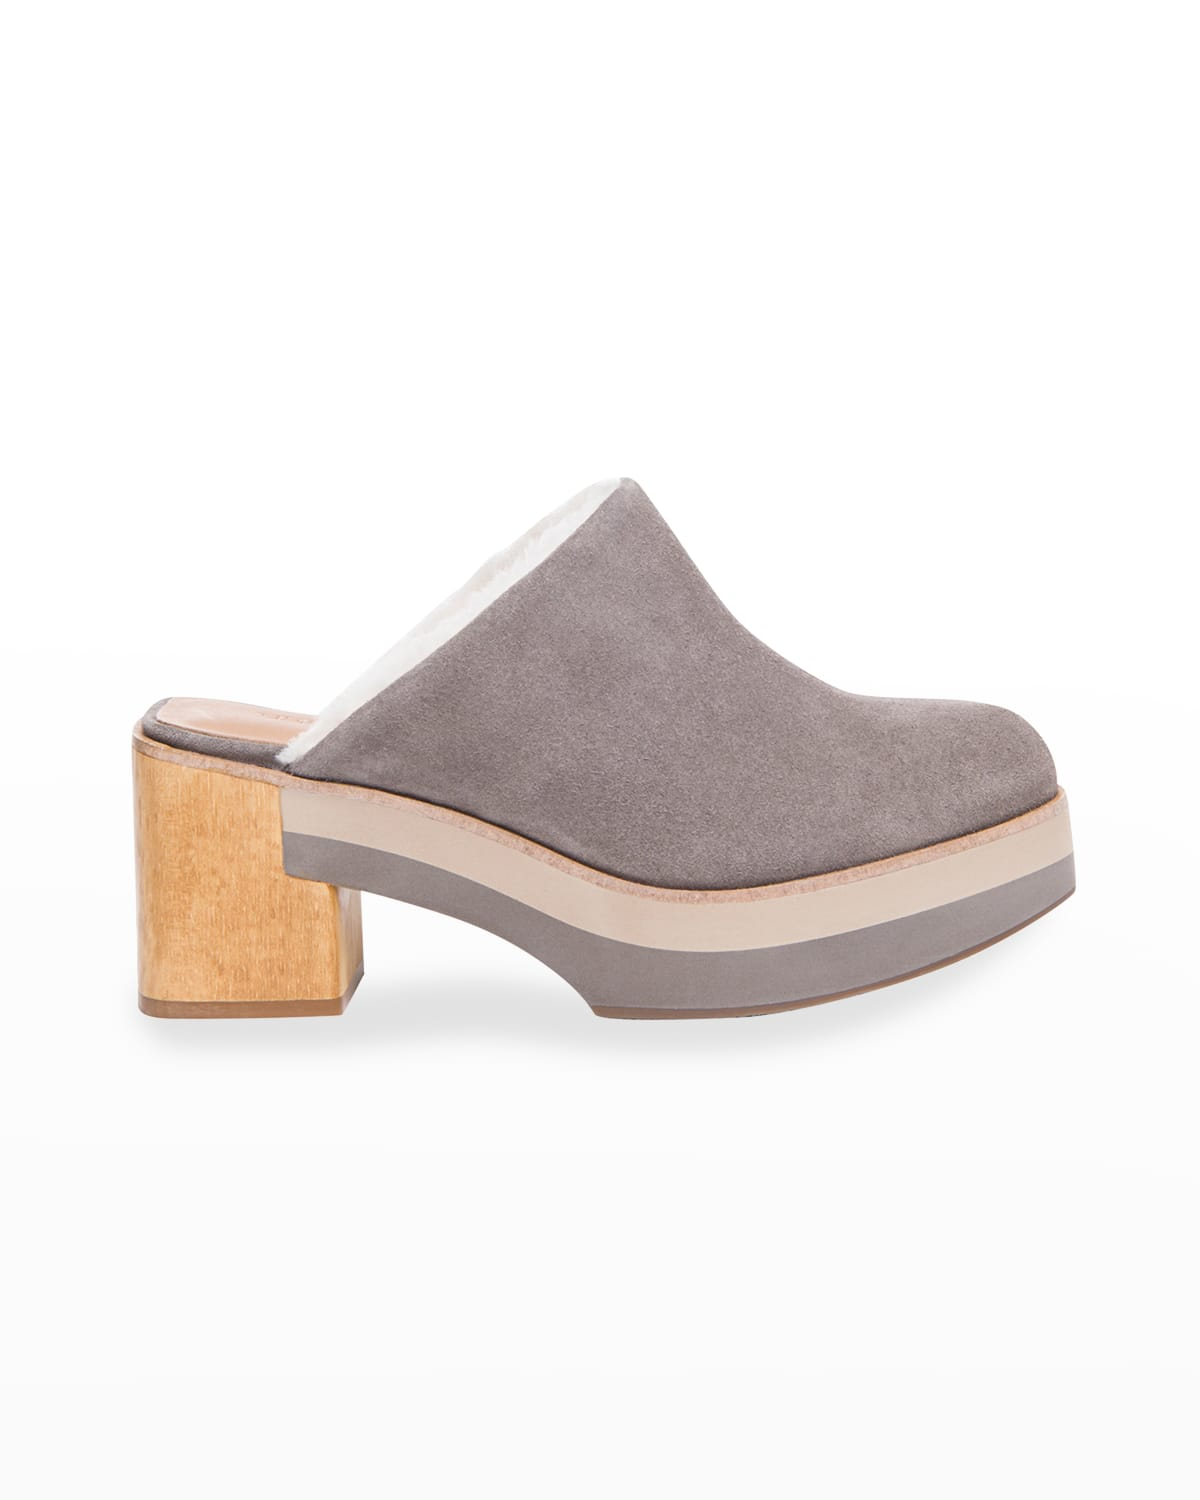 Sky Suede Shearling Clog Mules